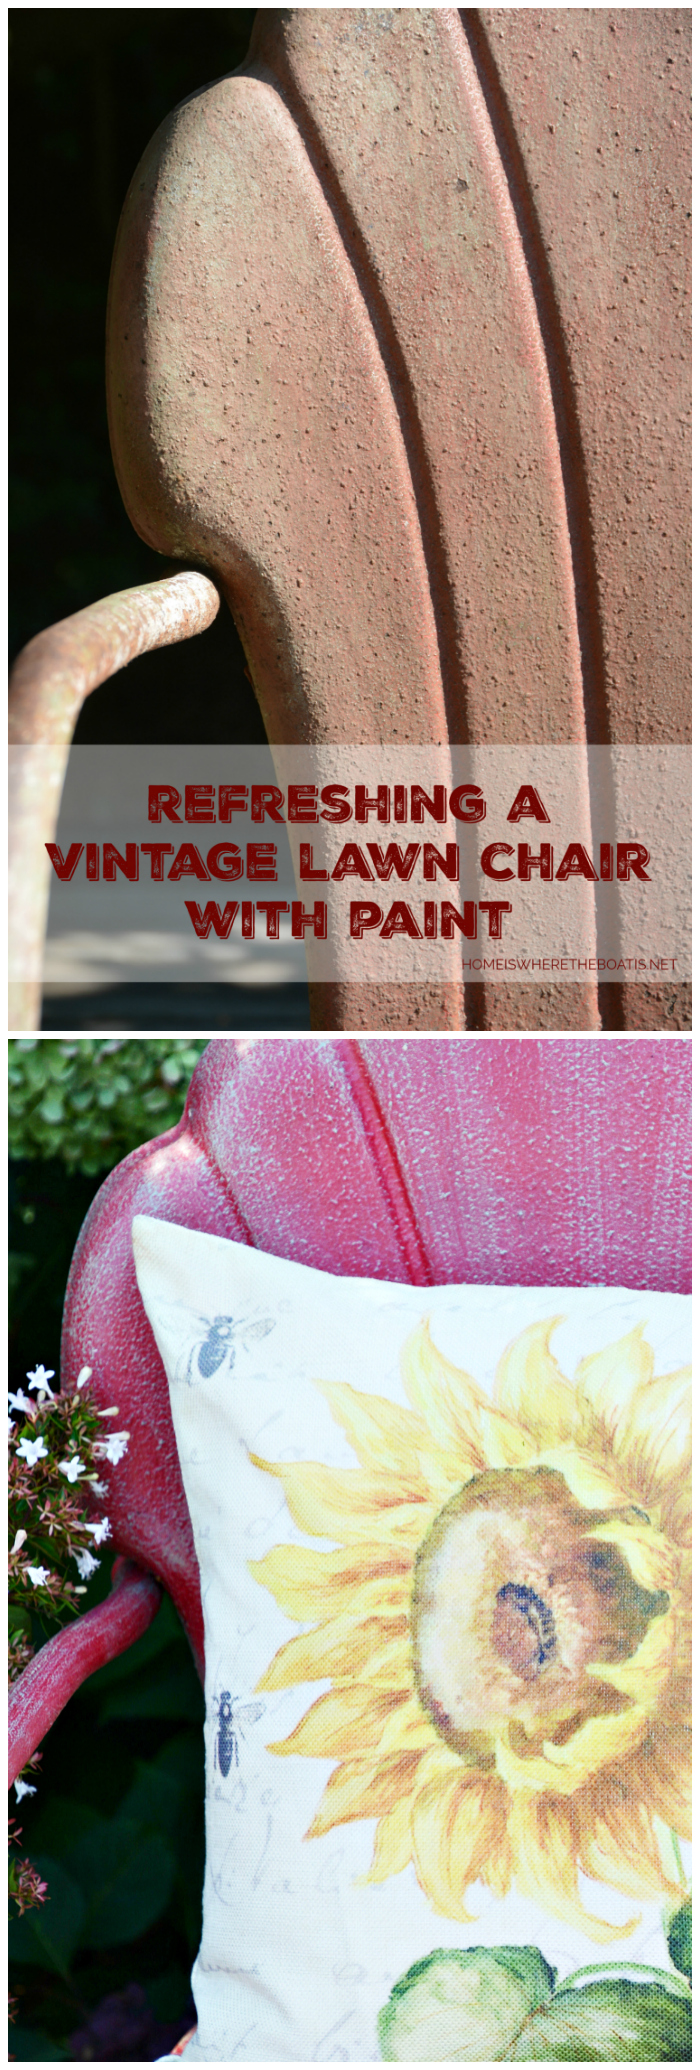 Vintage Lawn Chair Refresh with Paint | ©homeiswheretheboatis.net #chalkpaint #DIY